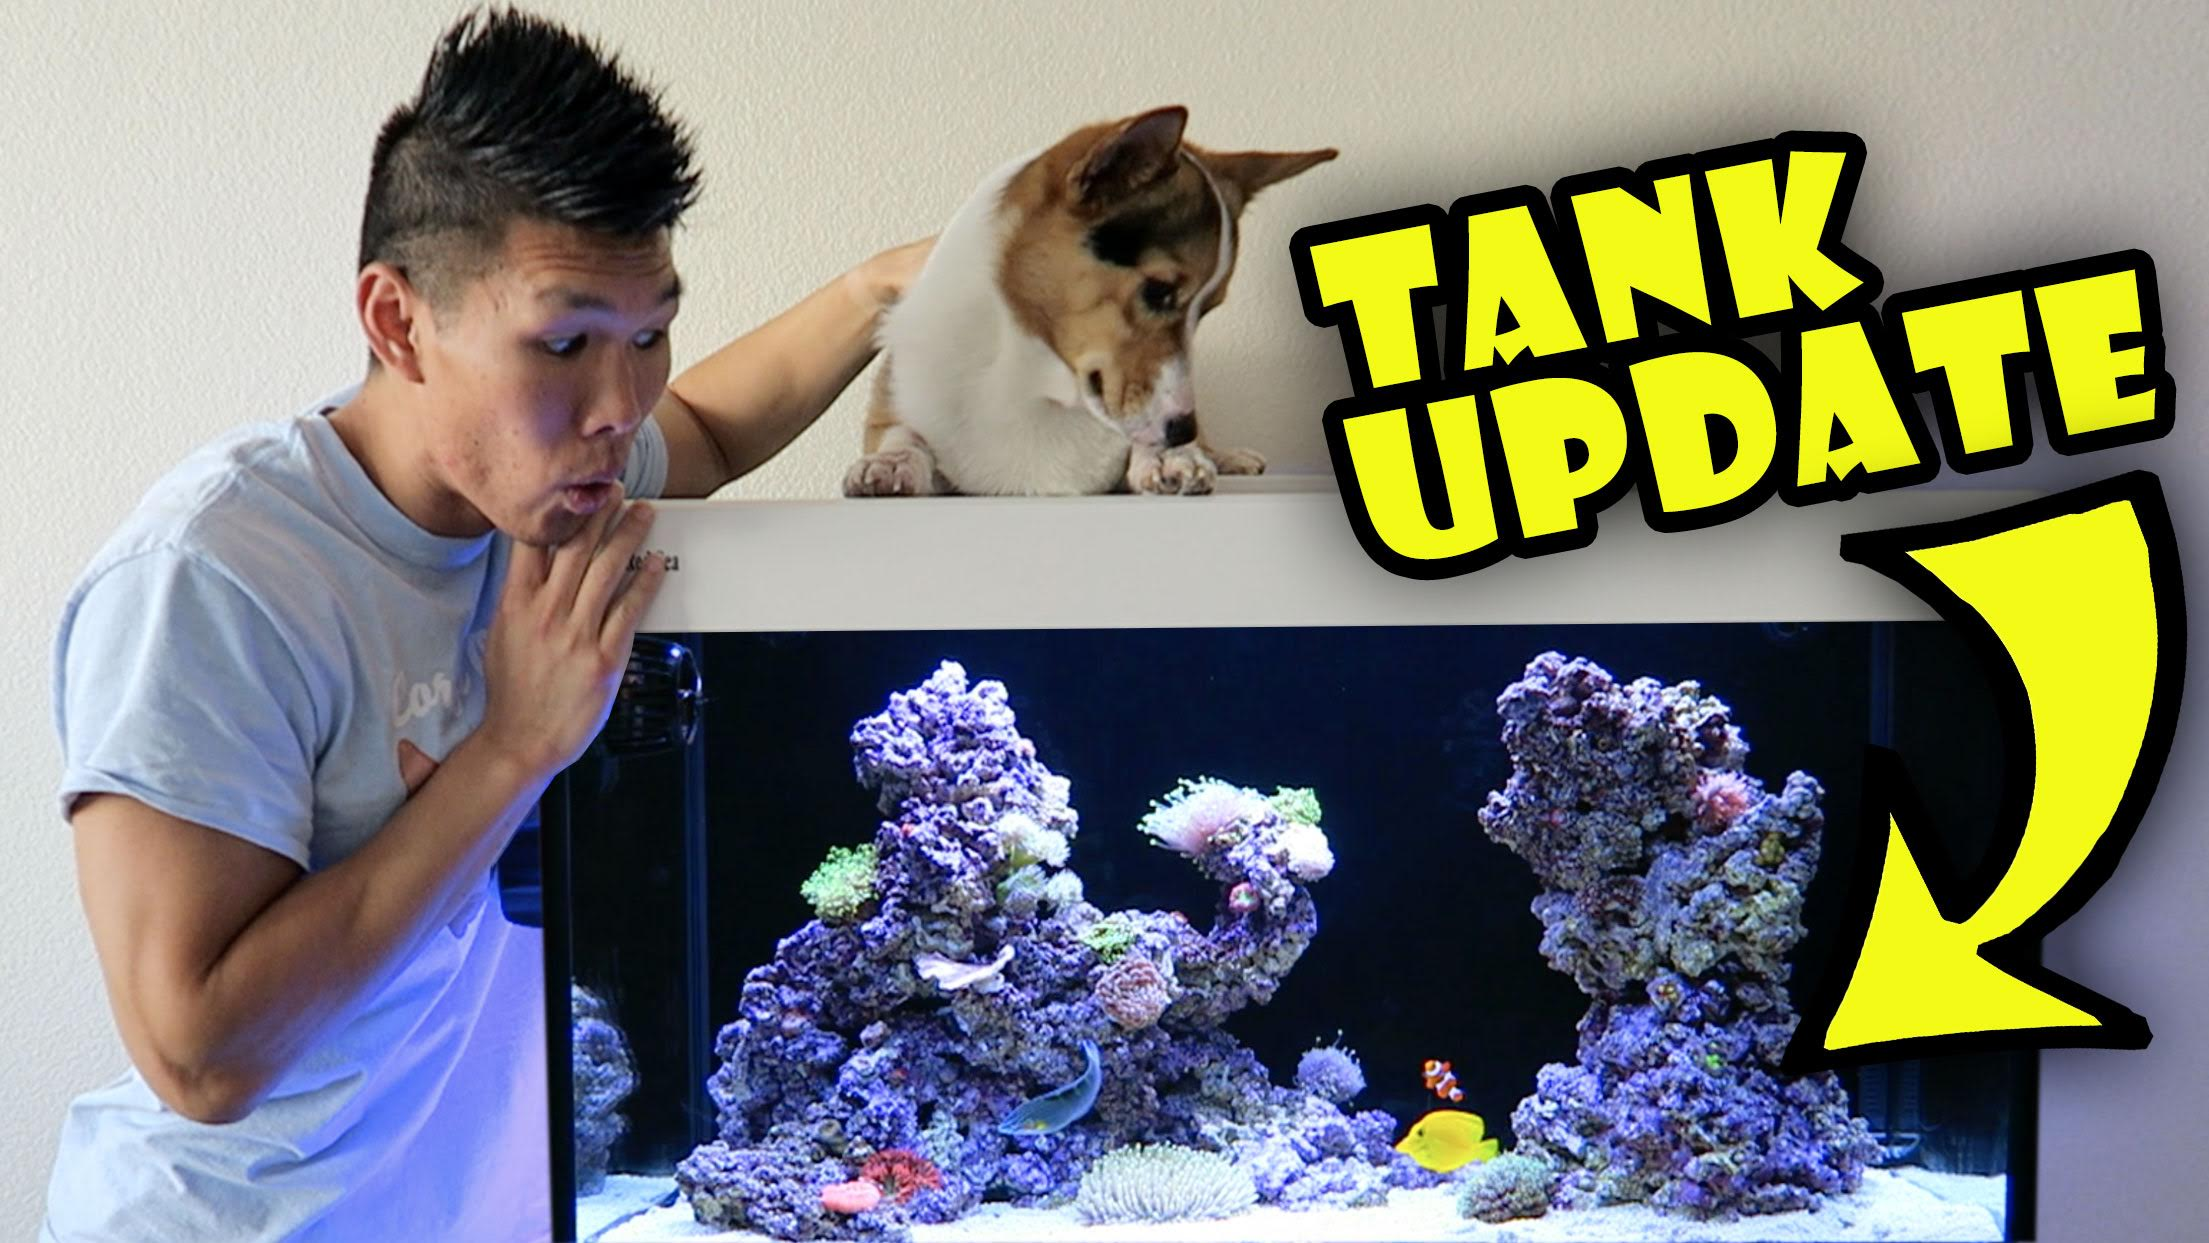 WHAT'S AN UNREAL FISH TANK SETUP LOOK LIKE?